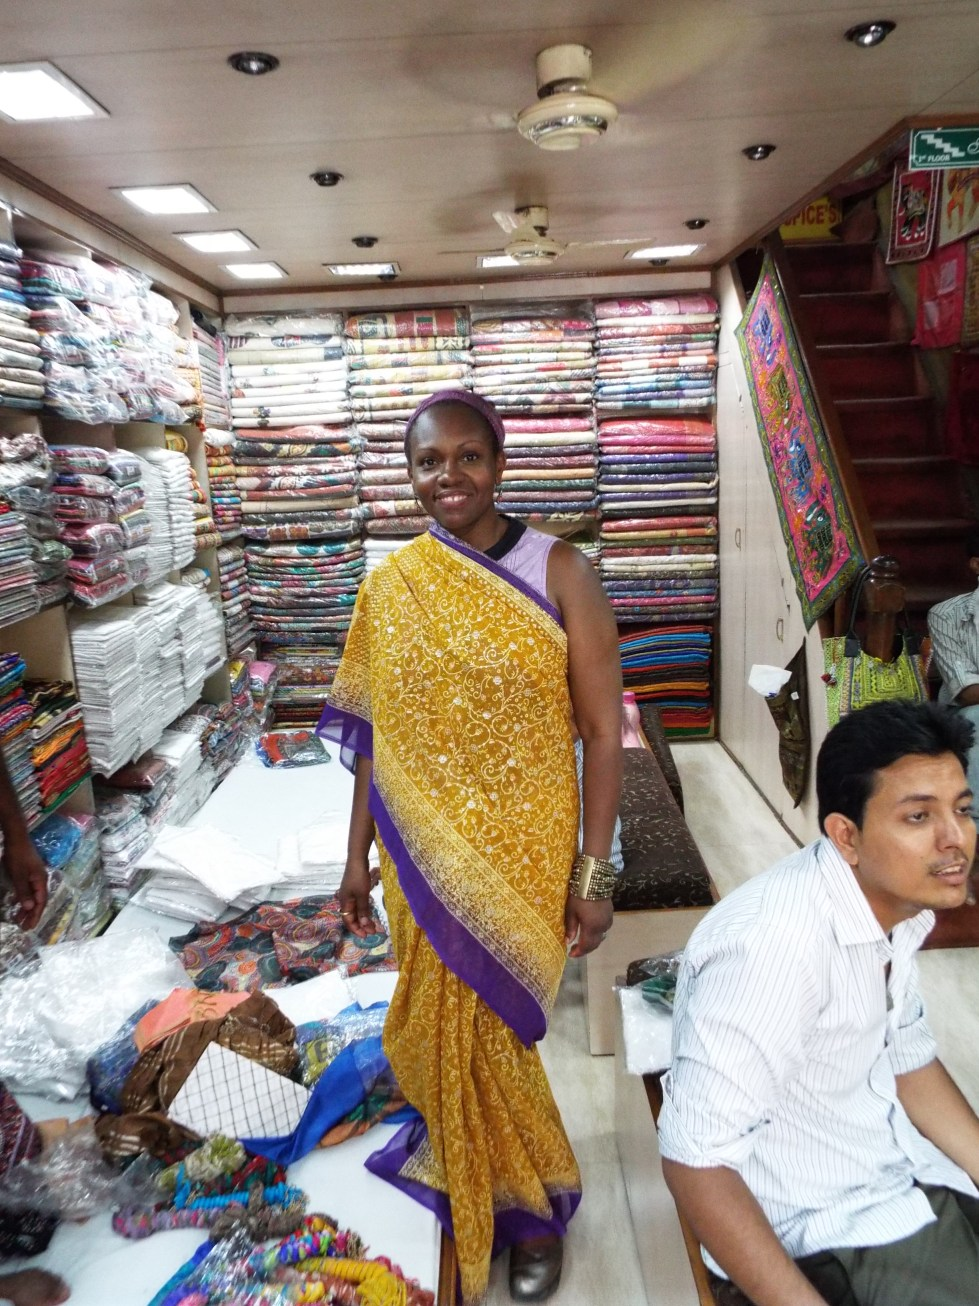 These shopkeepers were sweet enough to provide me this sari photo op, even though I was adamant about not buying one.  As I've said before, saris are beautiful but one would be out of context in my life.